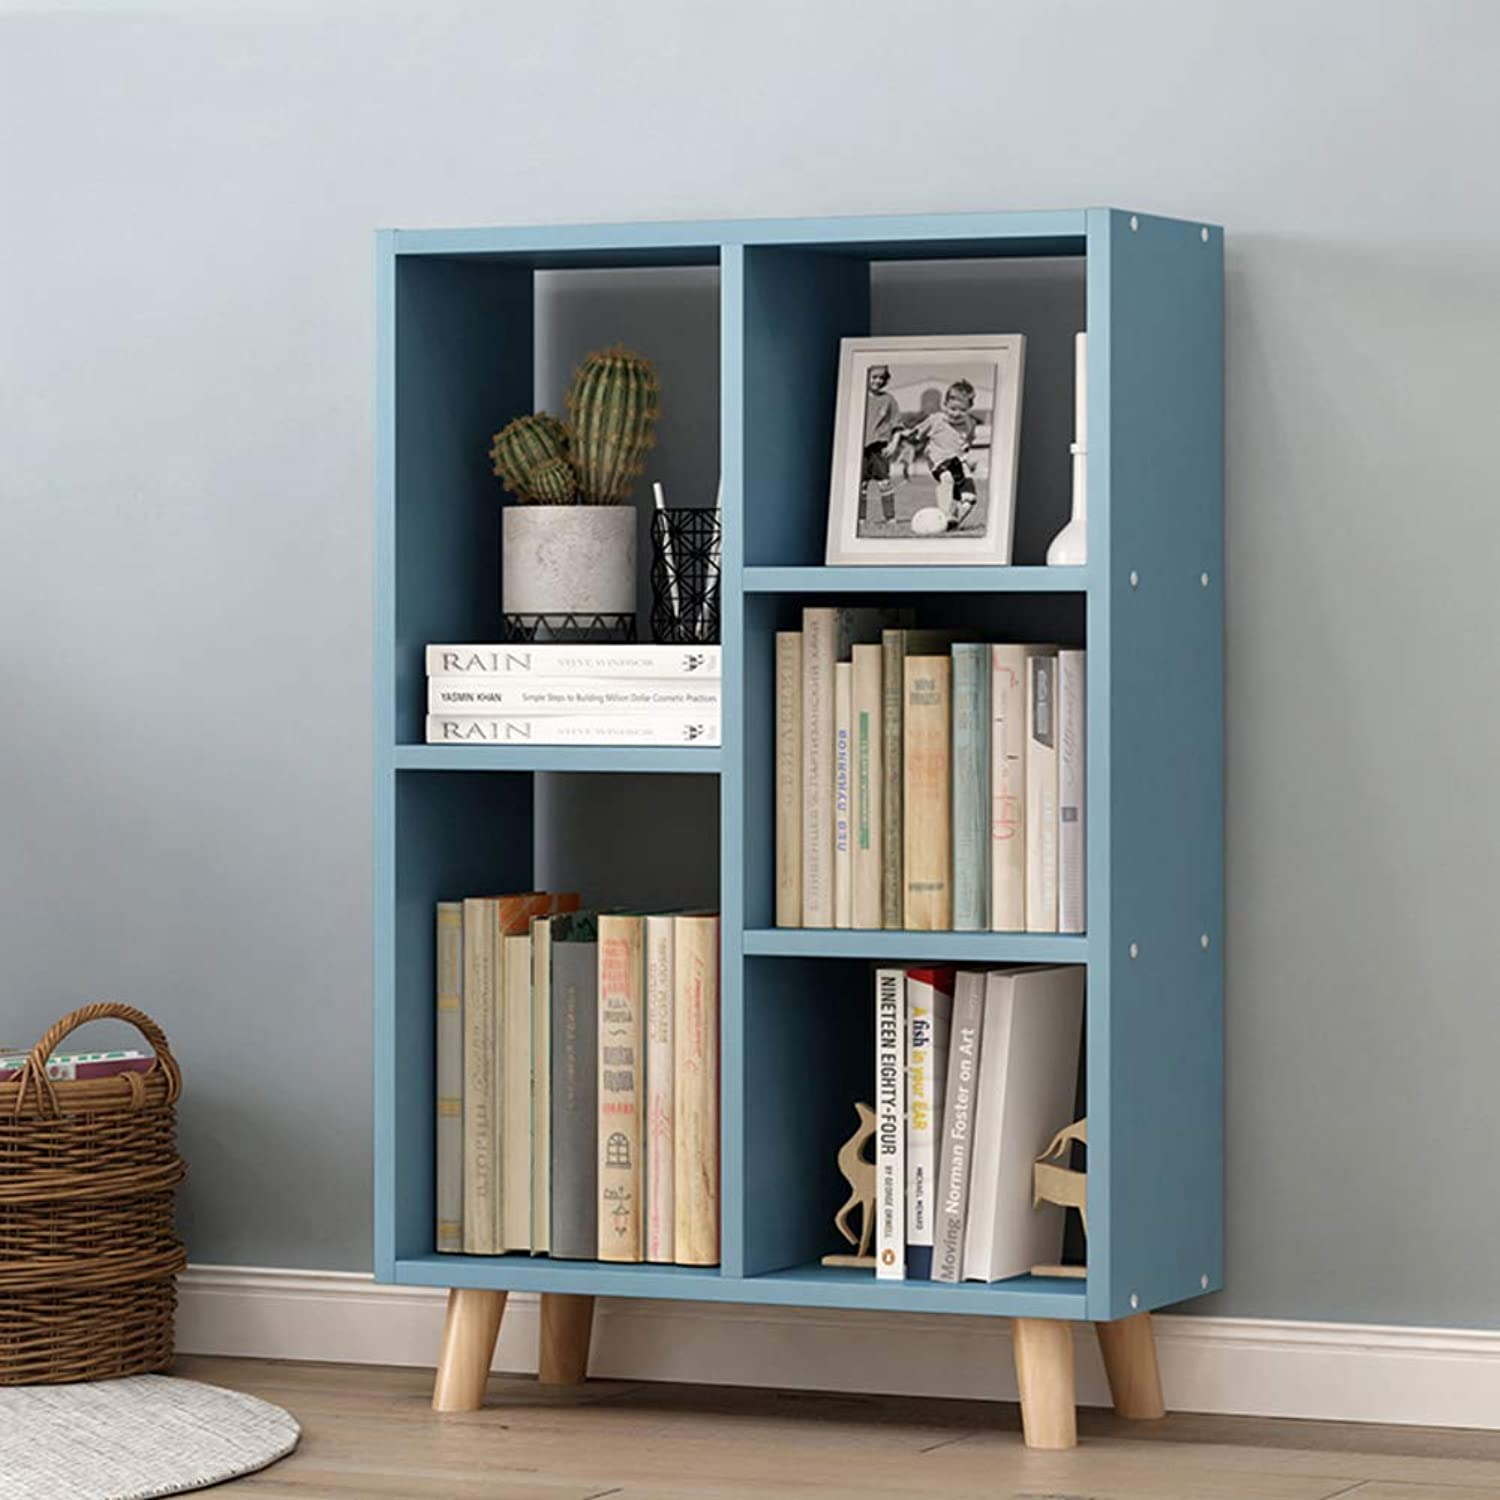 Multipurpose Bookshelf 5-Tier,Space Saving Bookcase Floor-Standing Small and Refined File cabinets Storage Organizer Shelves-bluee 90x50x25cm(35x20x10inch)